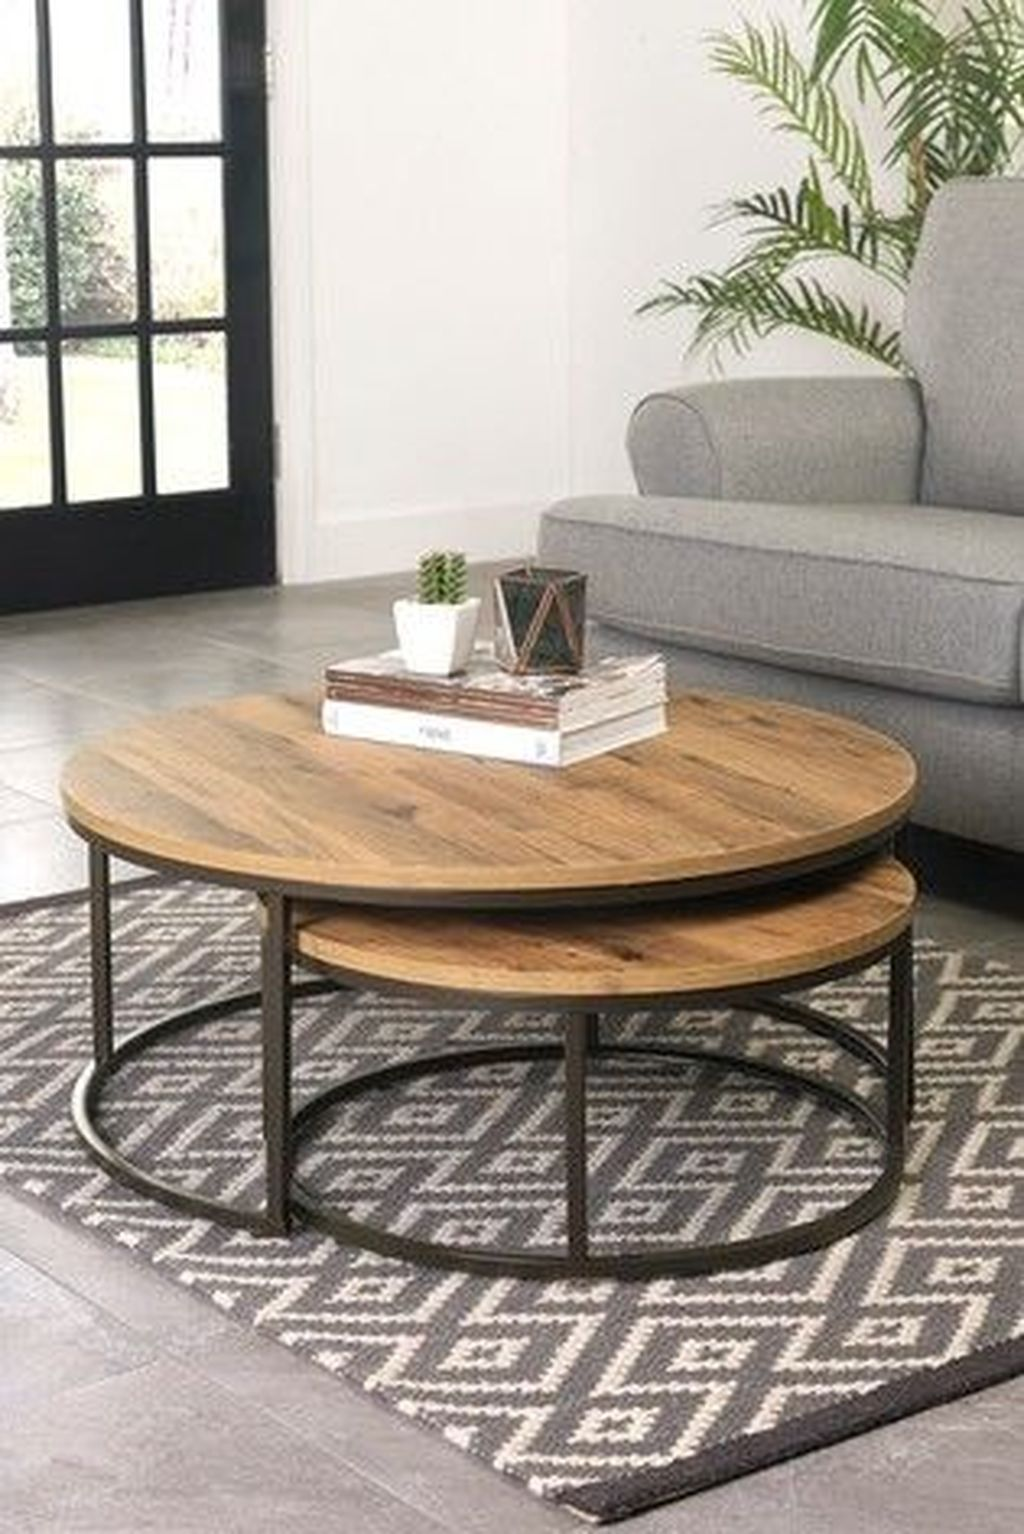 Cool Coffee Table Design Ideas Coffee Table Design Above Is An